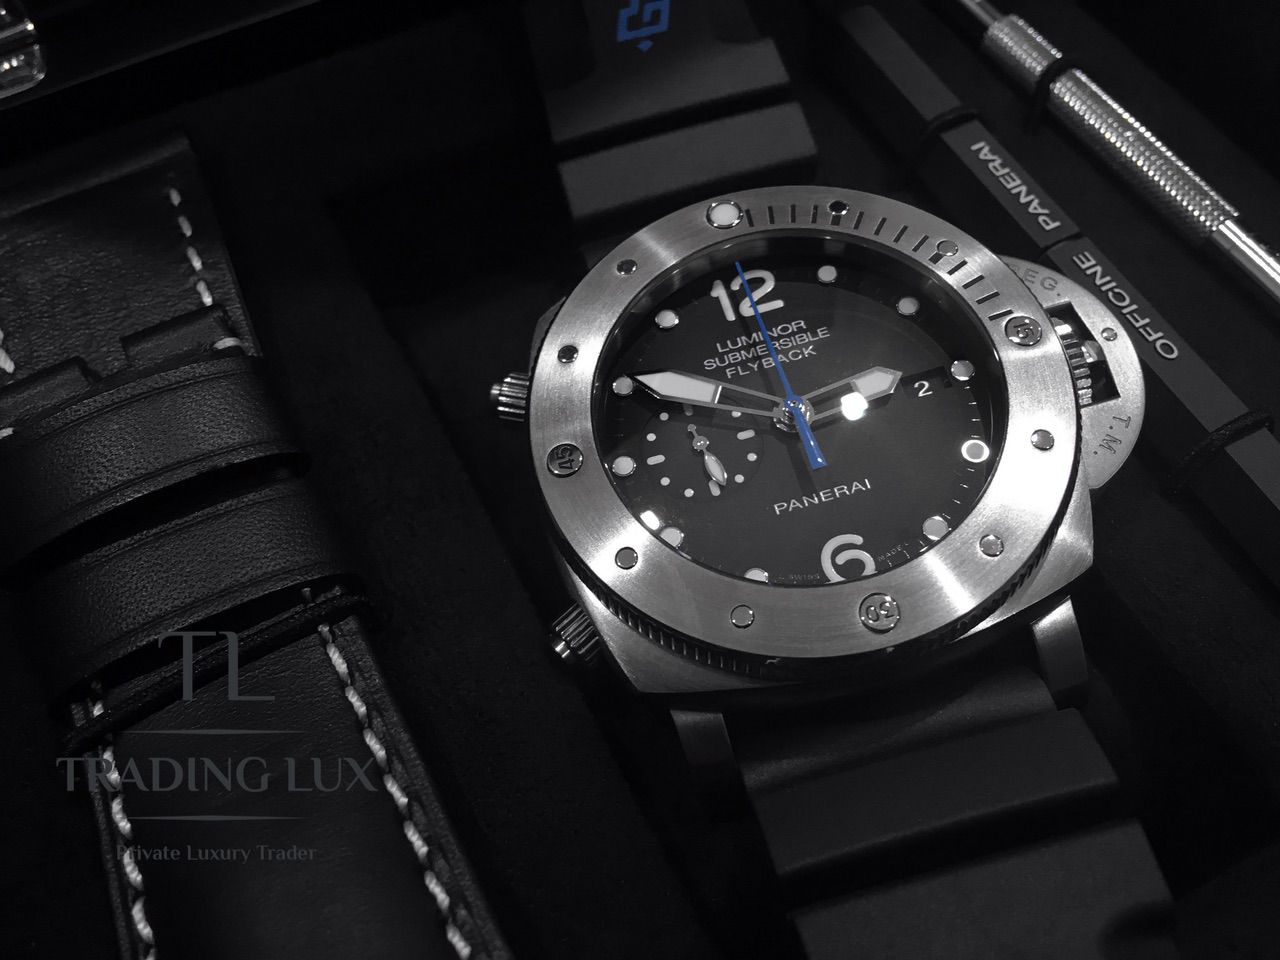 Panerai-Submersible-Chrono-PAM00614-6